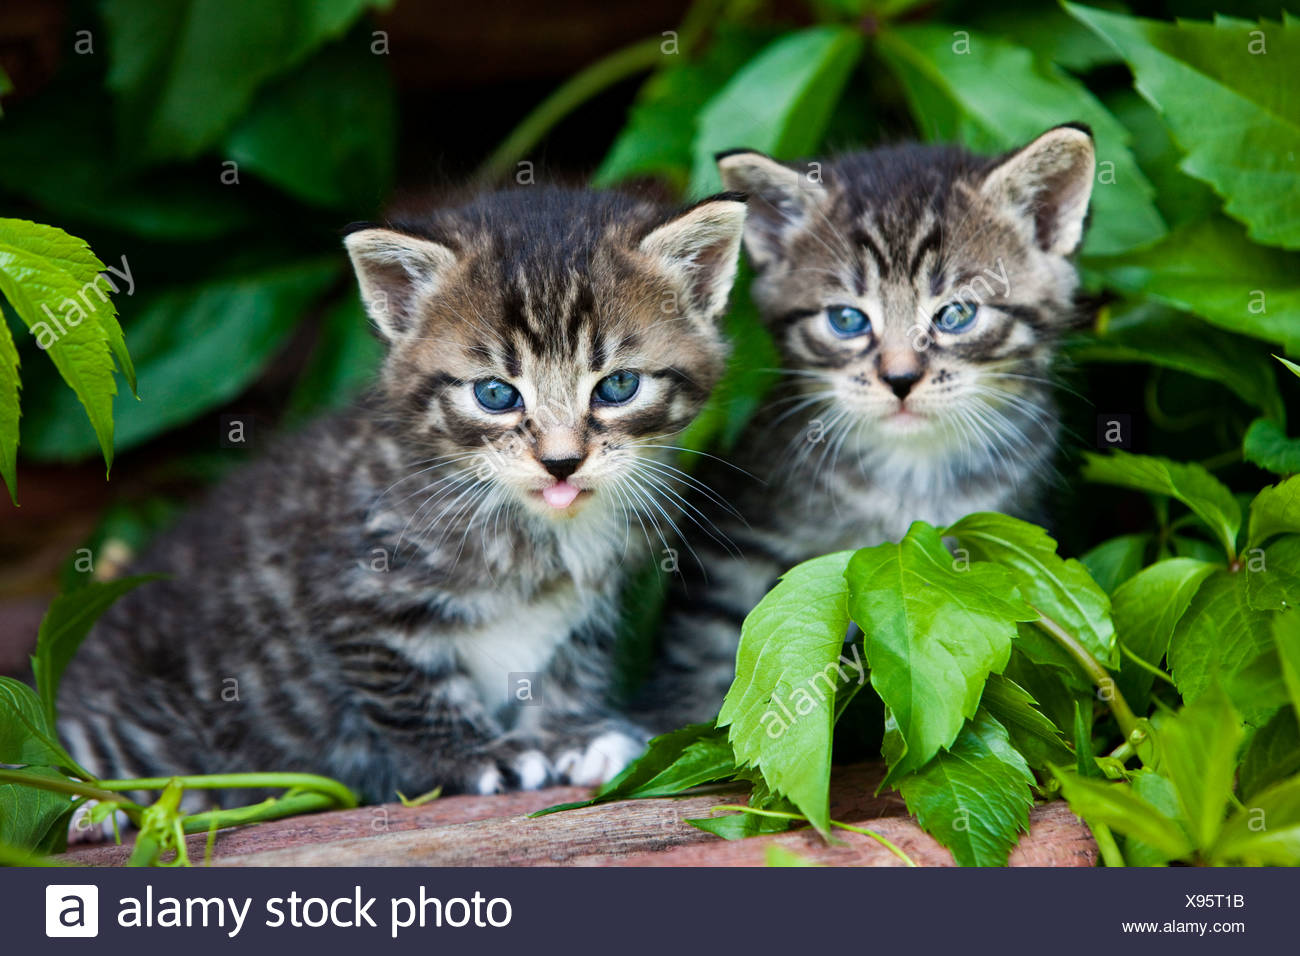 Two grey tabby domestic cats, kittens, North Tyrol, Austria, Europe Stock Photo